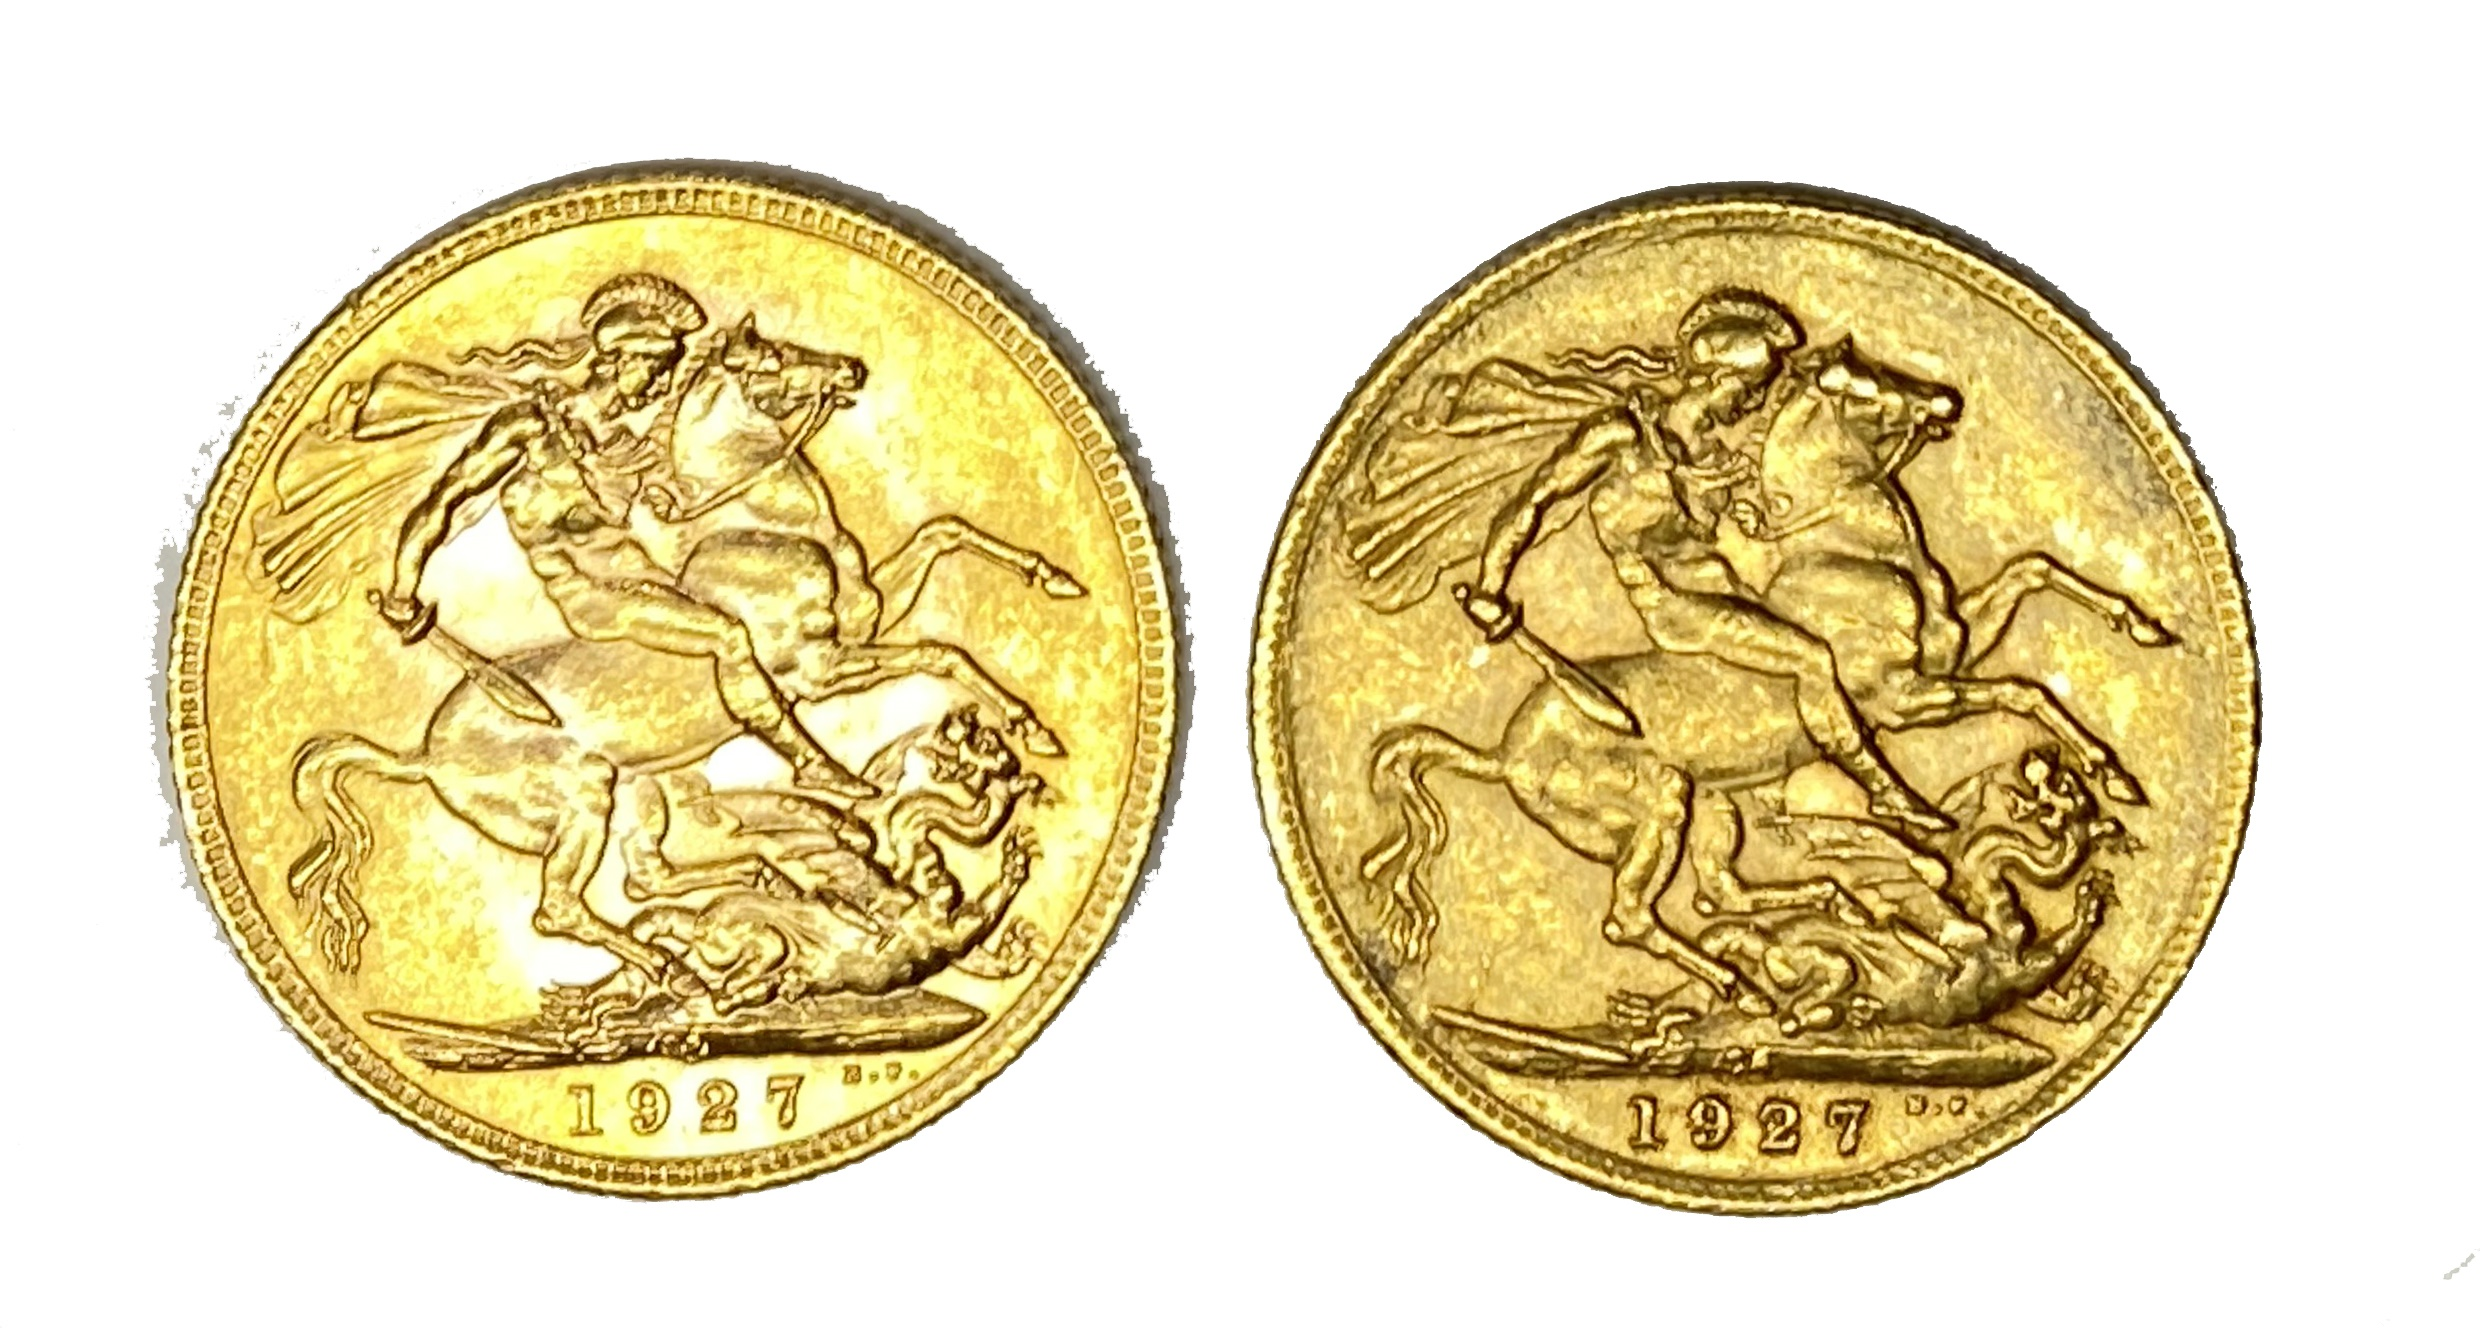 George V two gold Sovereign coins, 1927, Pretoria mint - Image 2 of 2